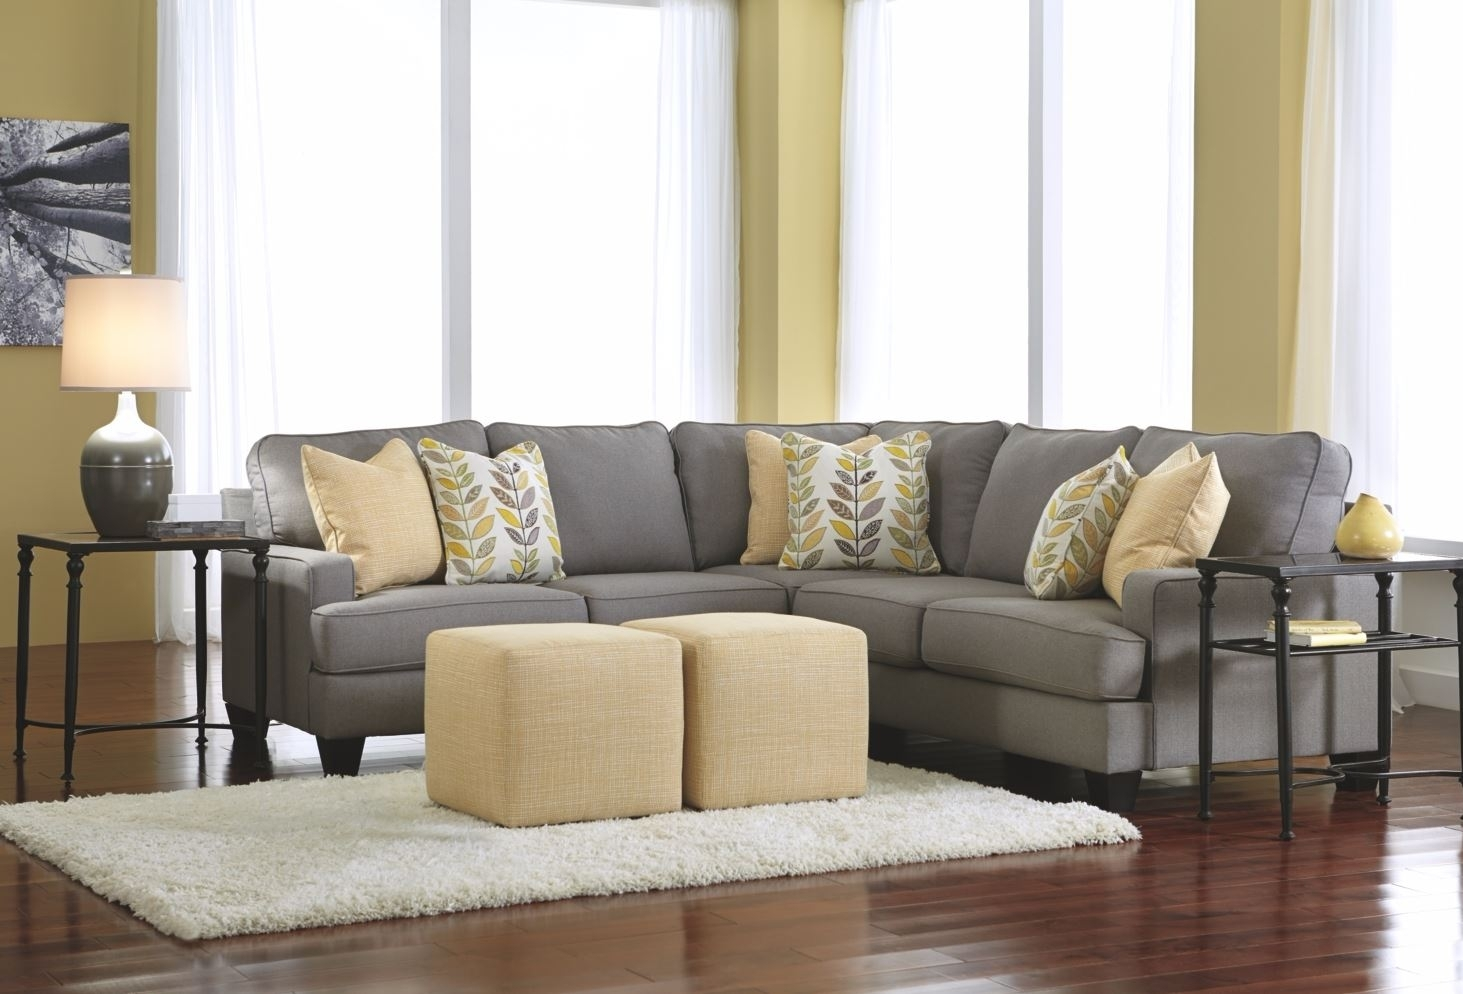 5 Tips For Getting The Sectional Of Your Dreams   Ashley Homestore Intended For Karen 3 Piece Sectionals (Image 3 of 25)